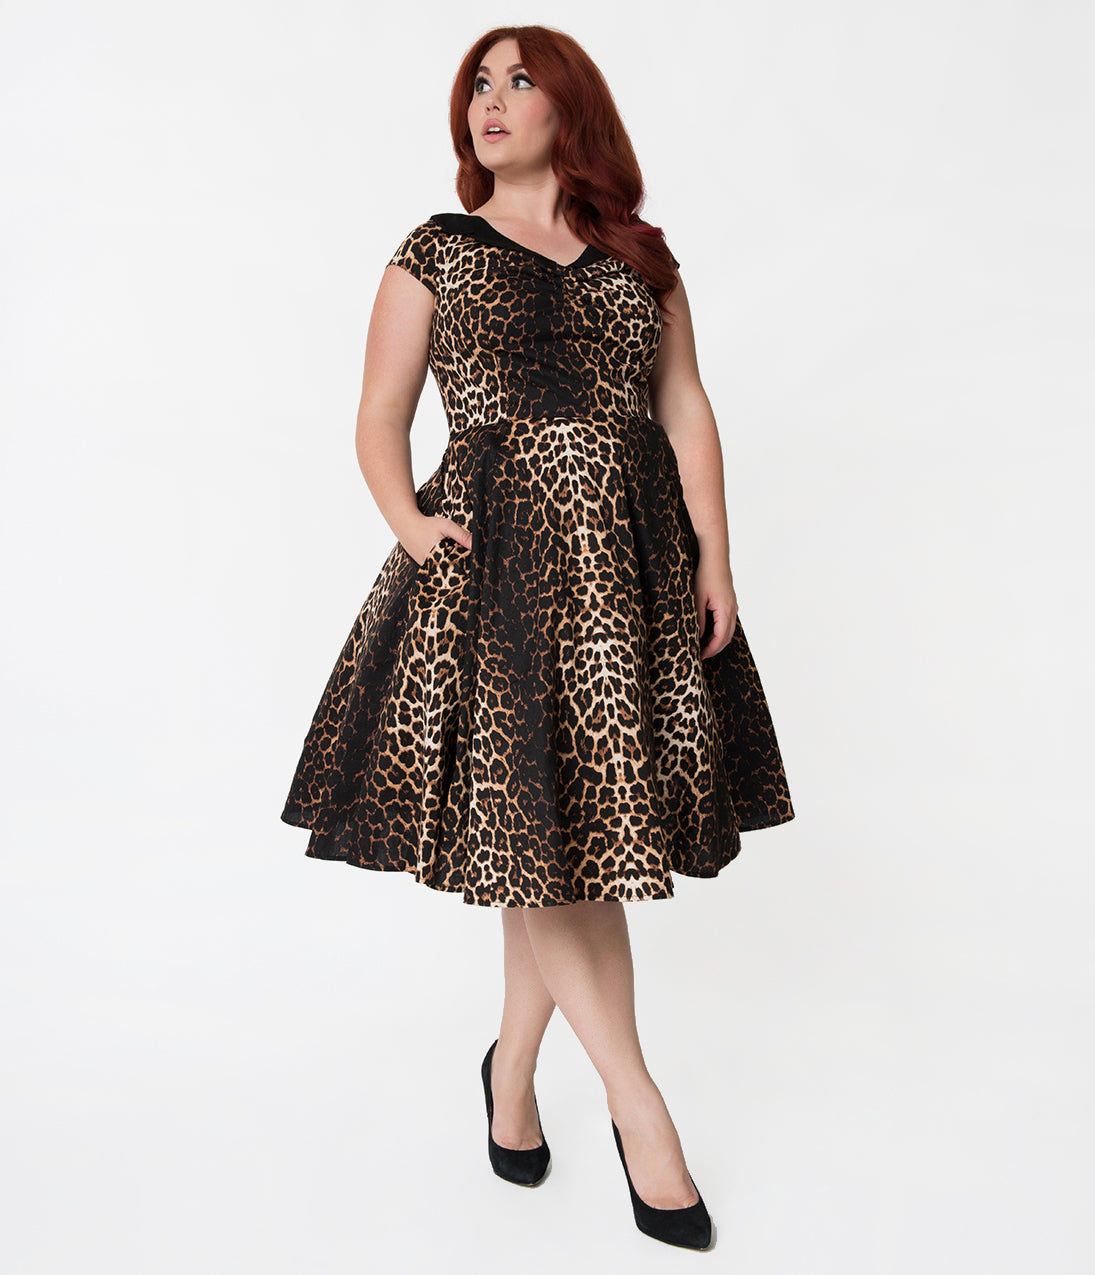 Rockabilly Dresses | Rockabilly Clothing | Viva Las Vegas Hell Bunny Plus Size Leopard Print Panthera Cotton Swing Dress $78.00 AT vintagedancer.com